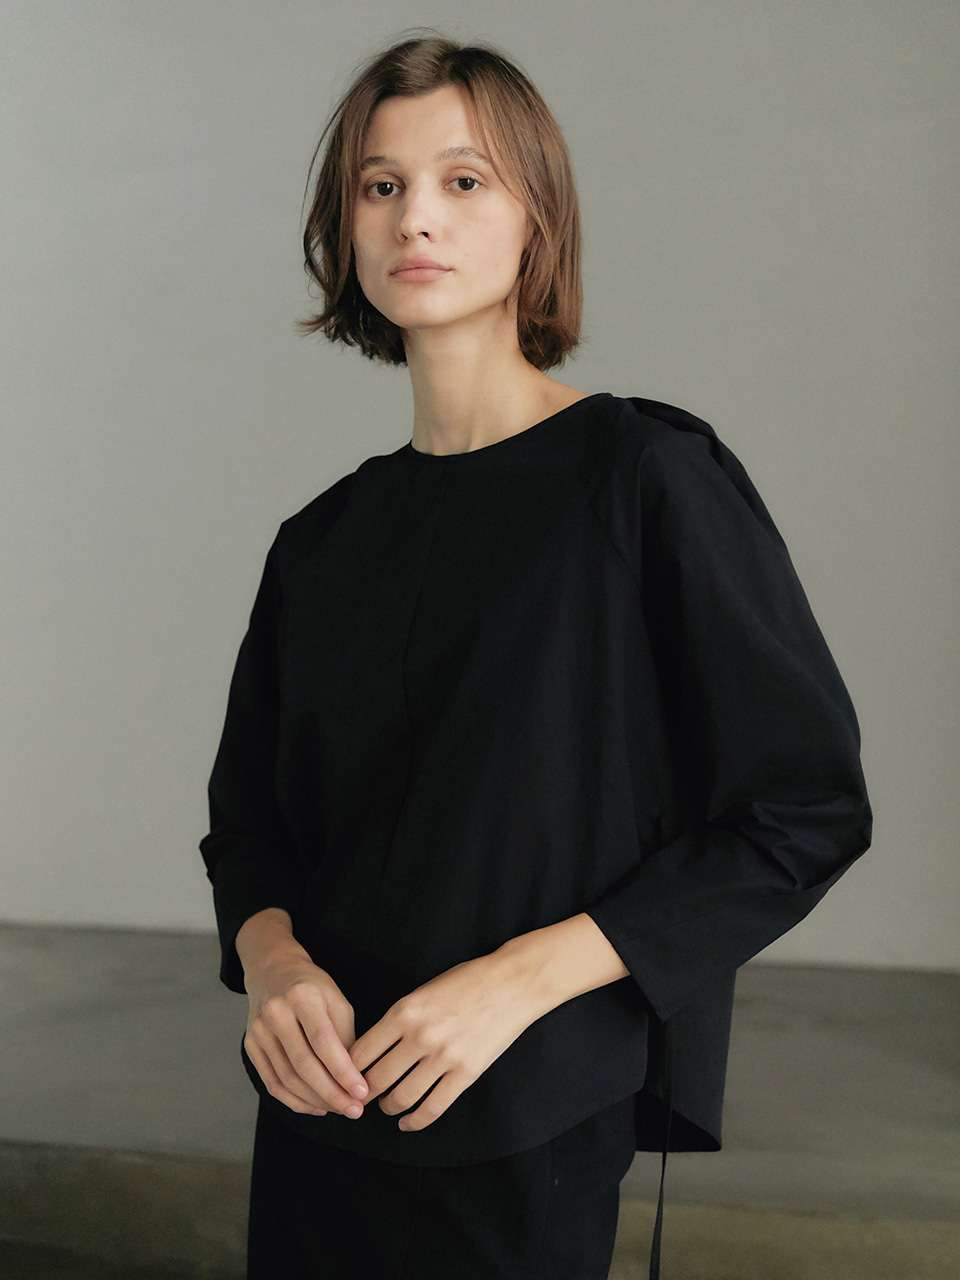 [9/23순차출고] Round volume blouse - Black